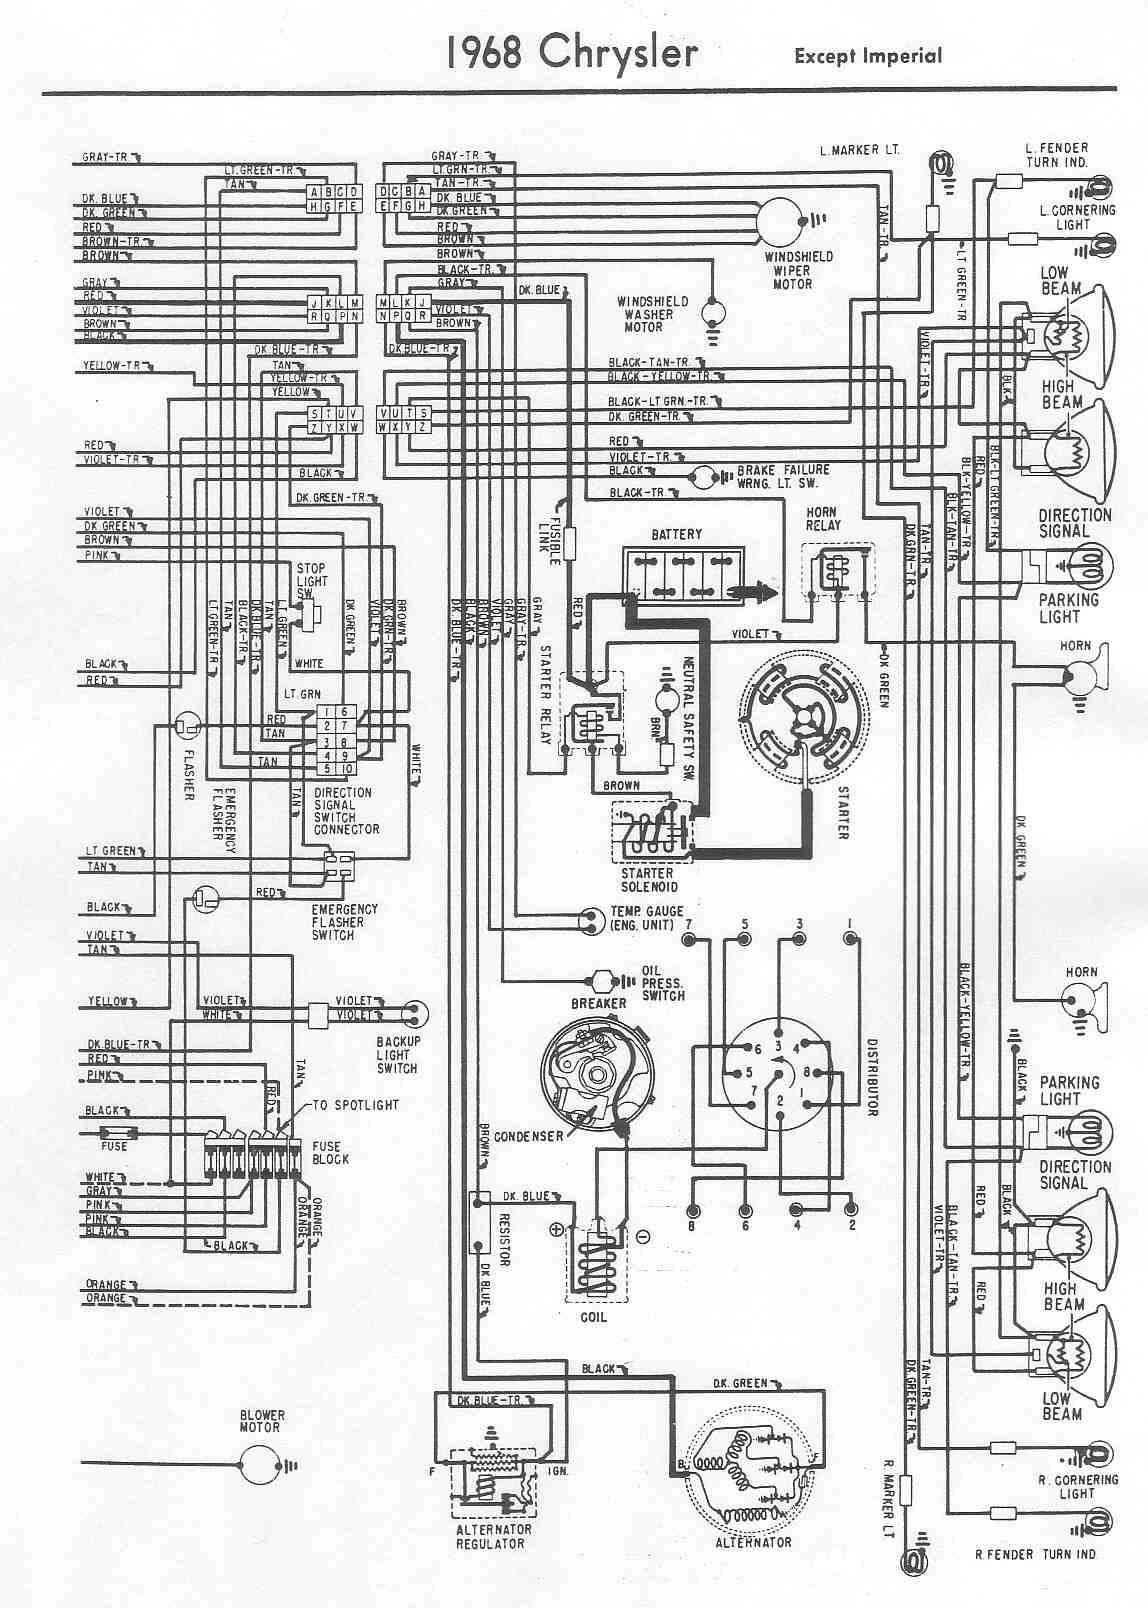 1968 chrysler 300 wiring diagram example electrical wiring diagram u2022 rh cranejapan co